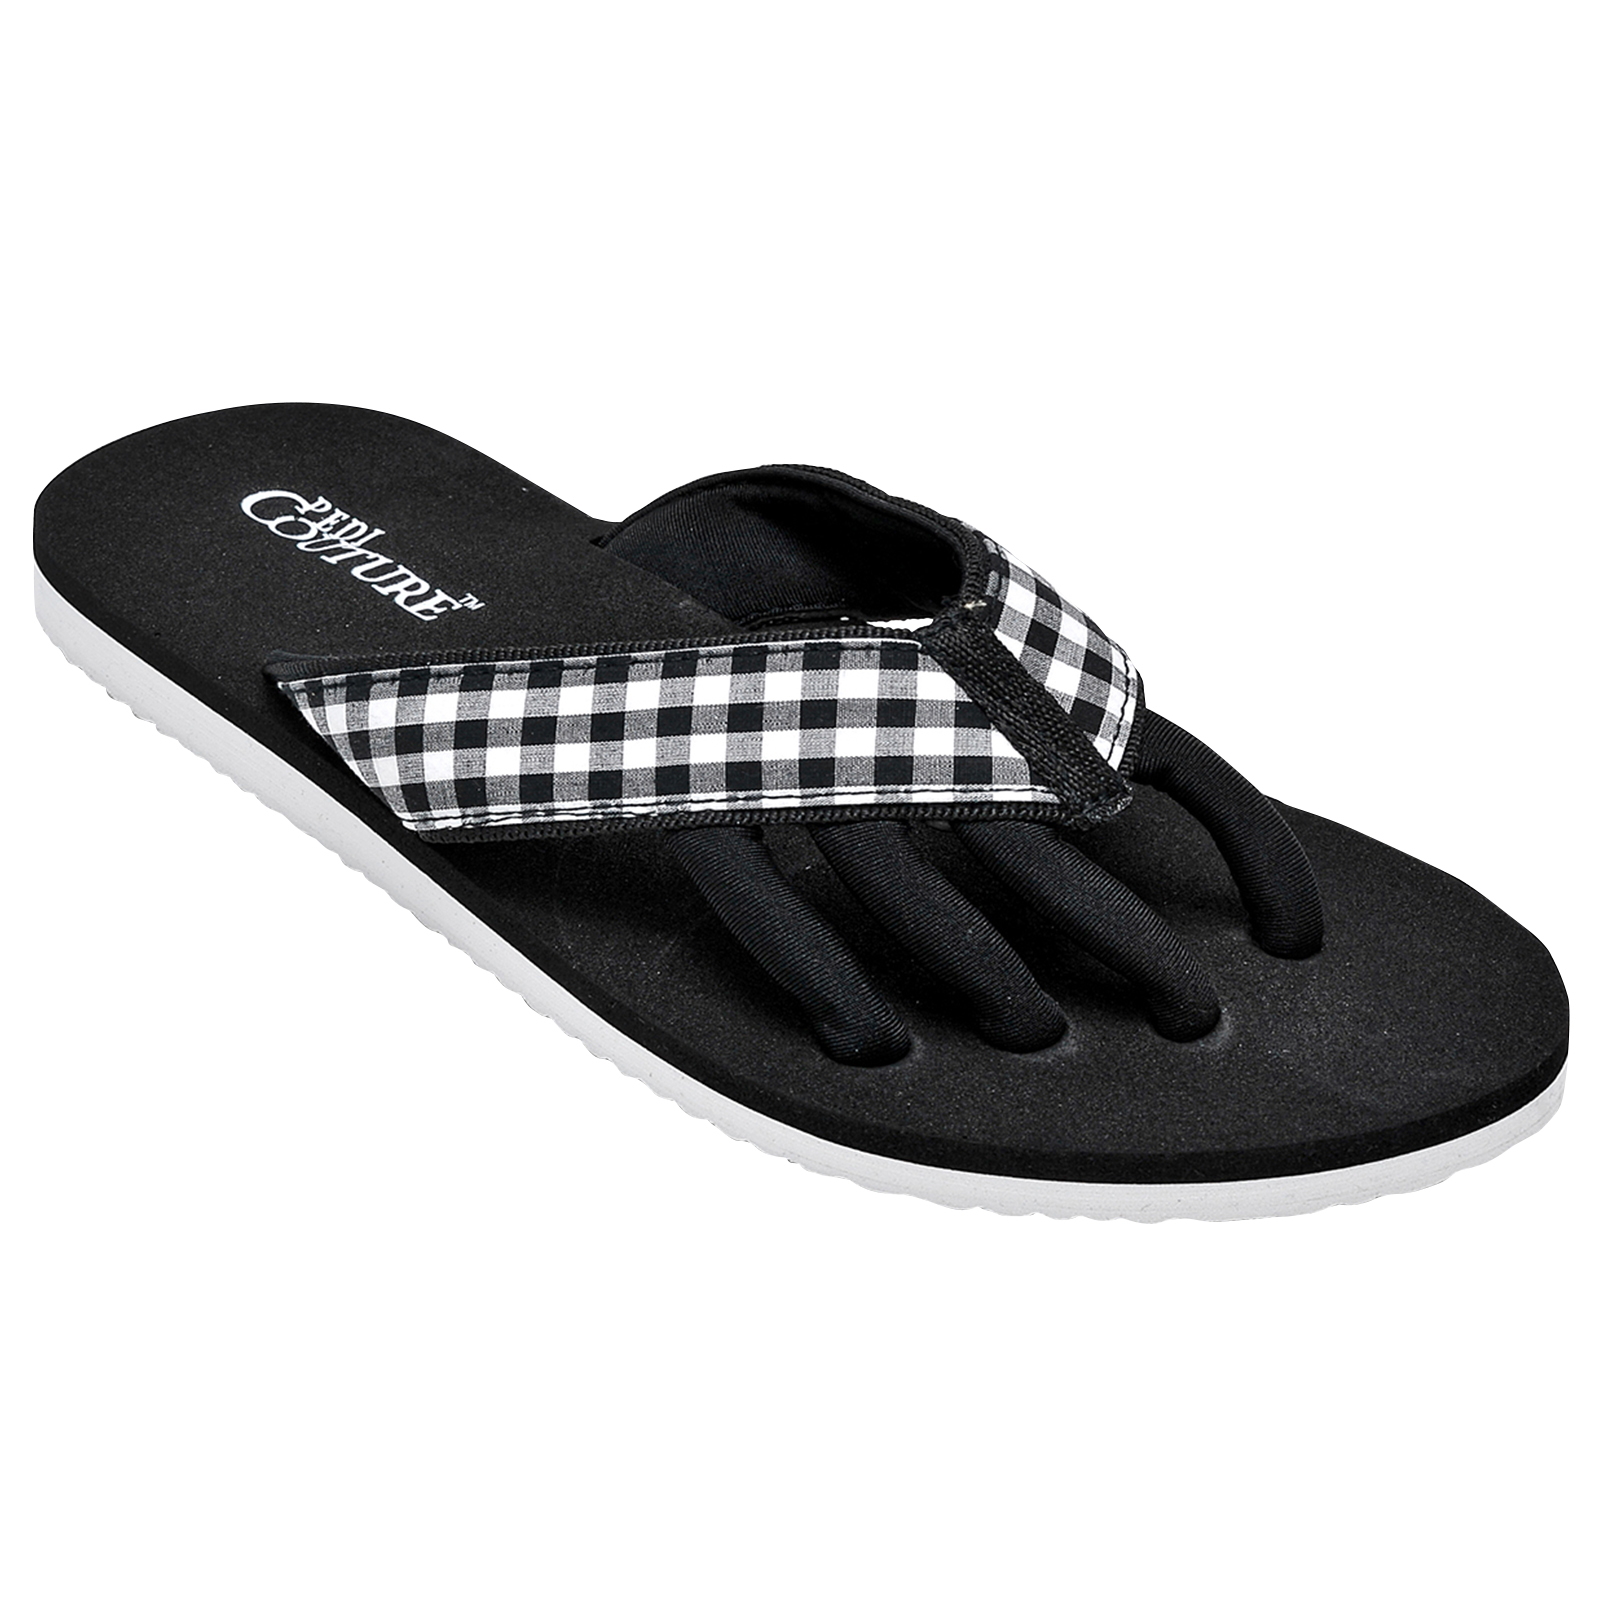 PEDI COUTURE NEW Women's Gingham Pedicure Spa Toe Separator Sandal